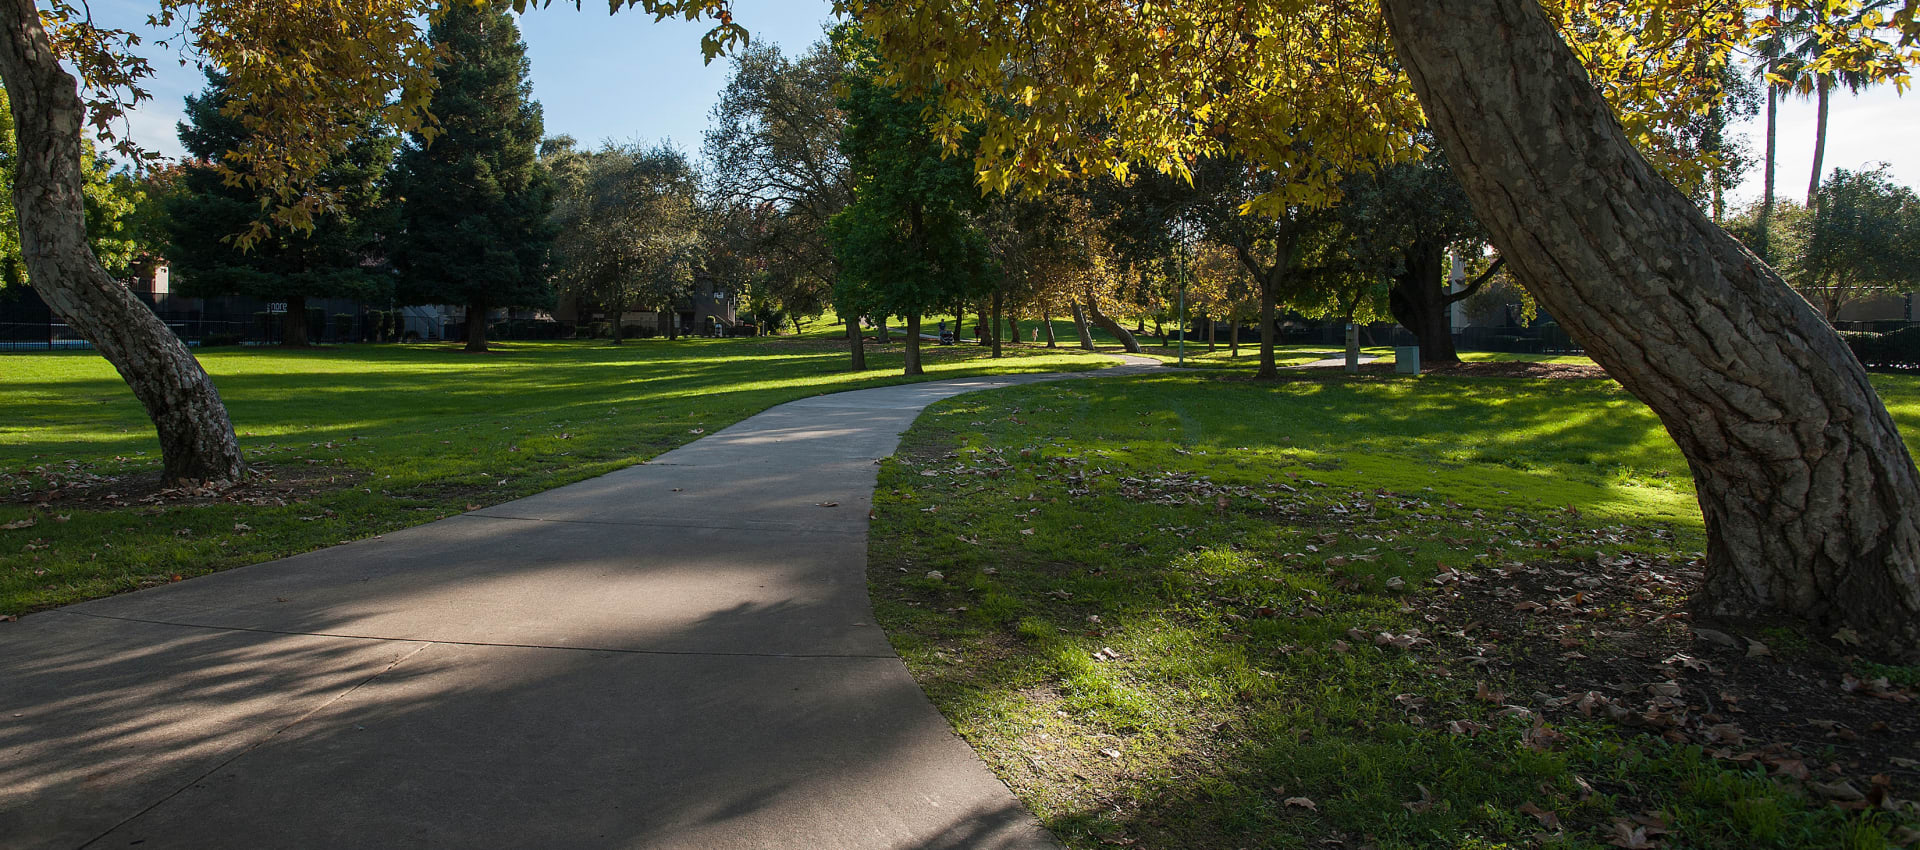 Shore Park at Riverlake is located near Shore Park in Sacramento, California.